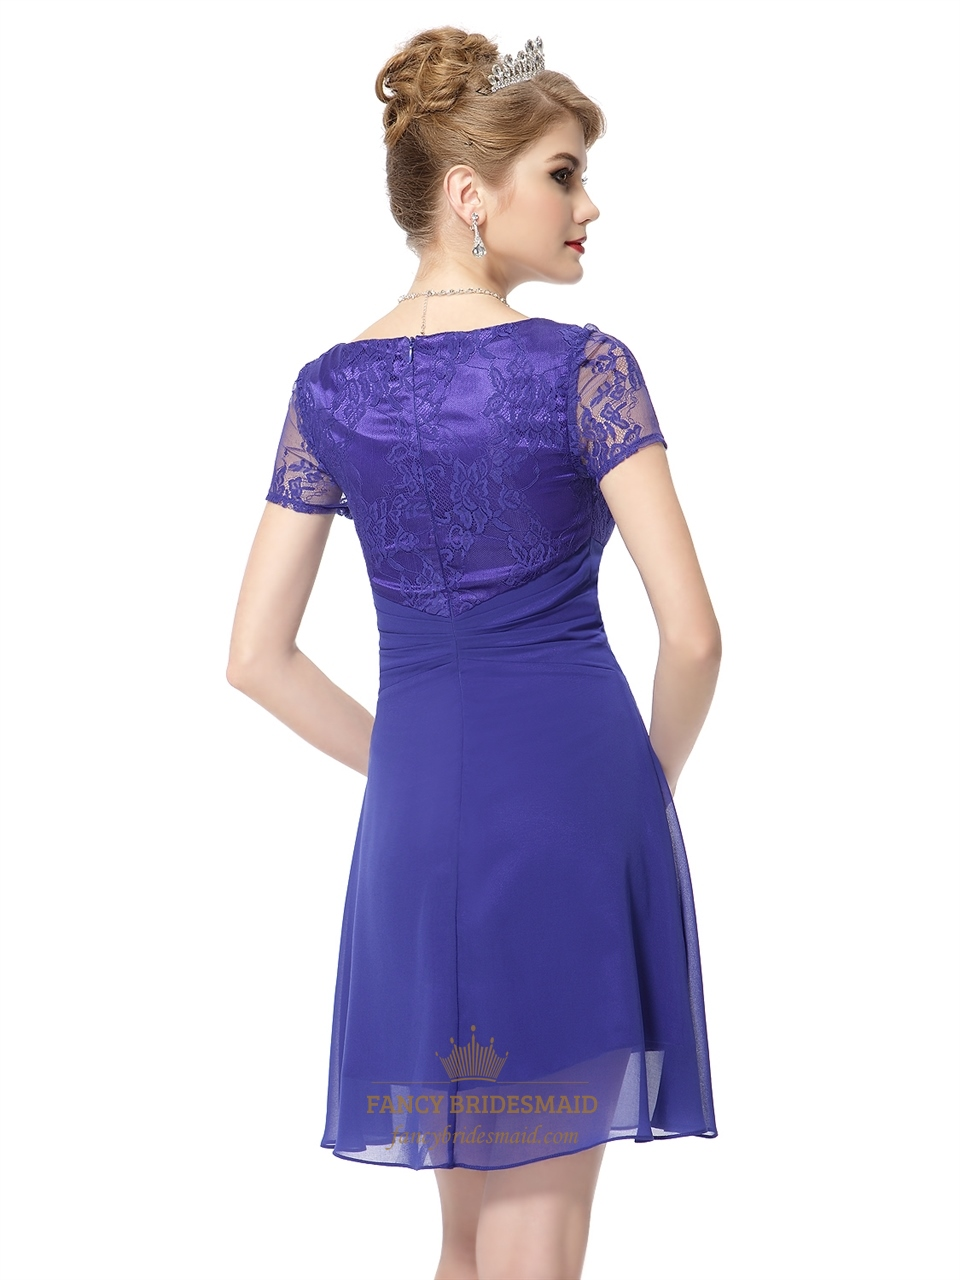 Royal blue chiffon short sweetheart bridesmaid dresses for Royal blue short wedding dresses